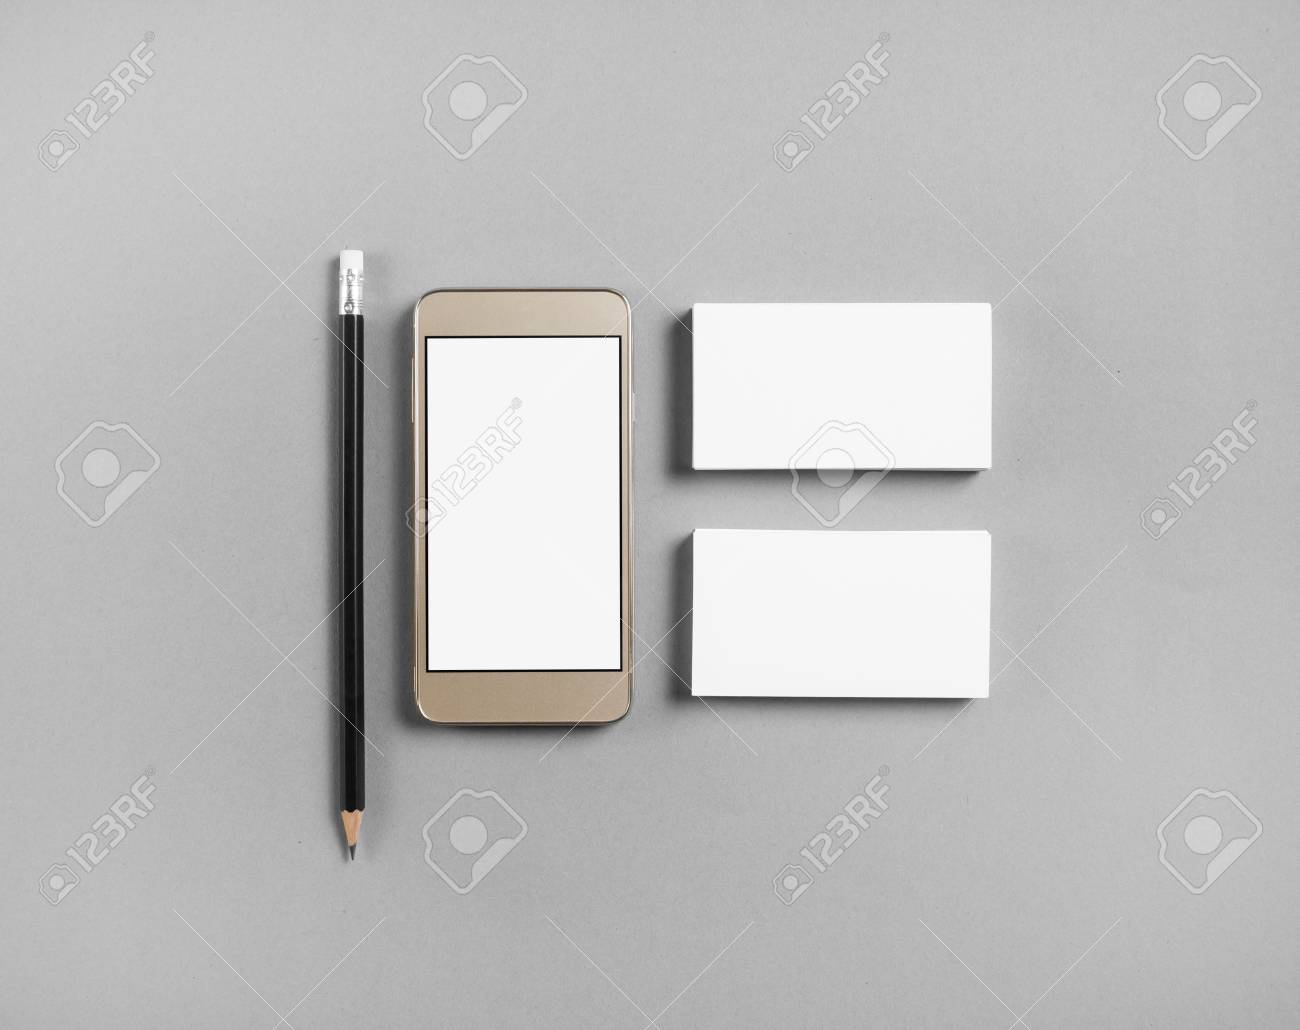 Mockup of blank business cards pencil and cellphone with blank mockup of blank business cards pencil and cellphone with blank screen at gray paper background colourmoves